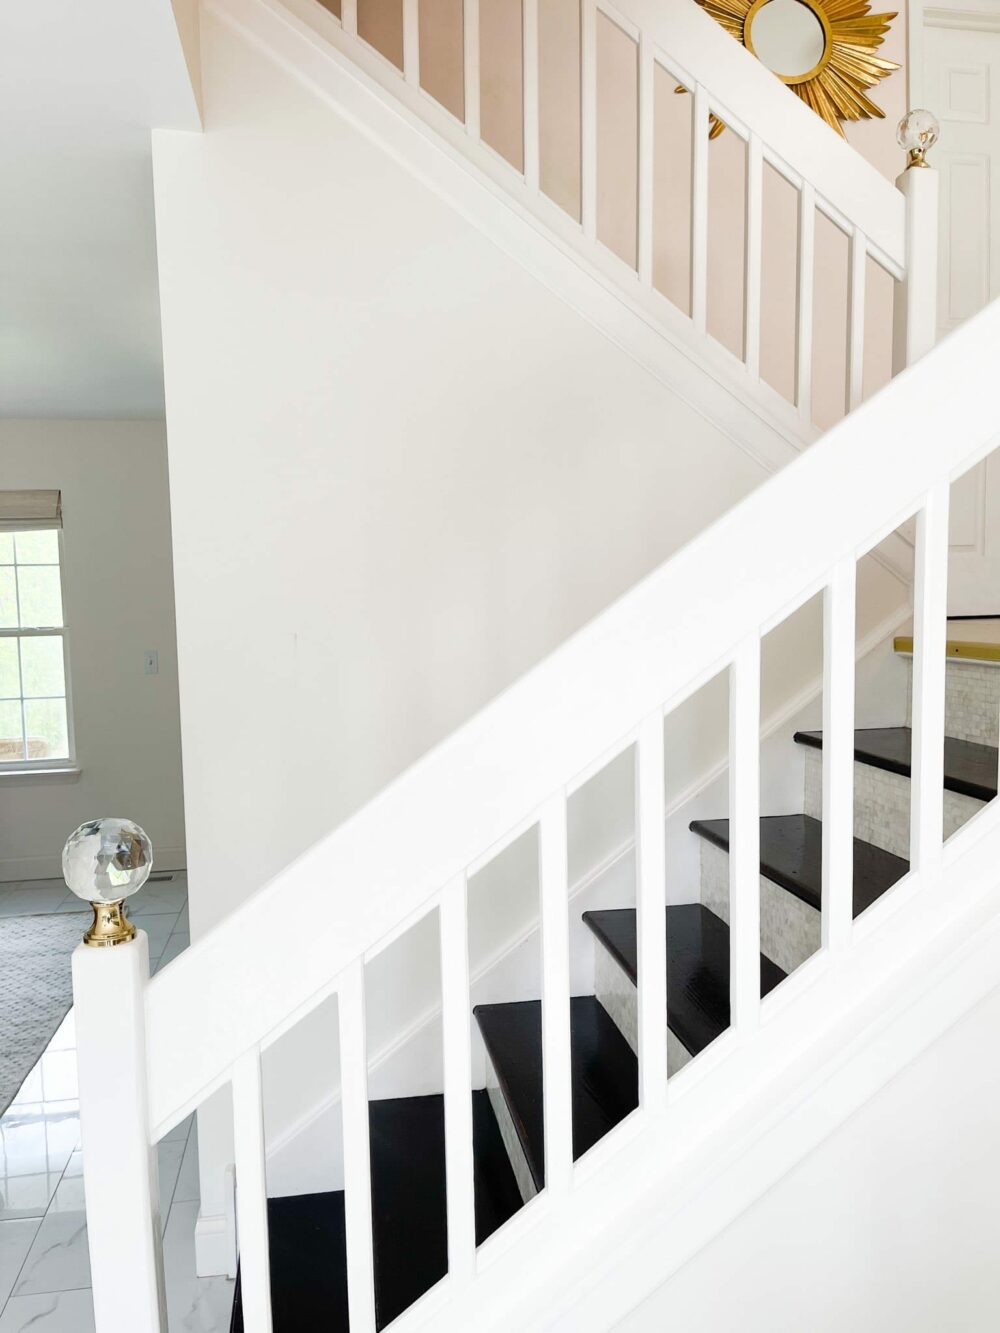 Two large crystal finials on brass base, mounted on white staircase railing newel posts.